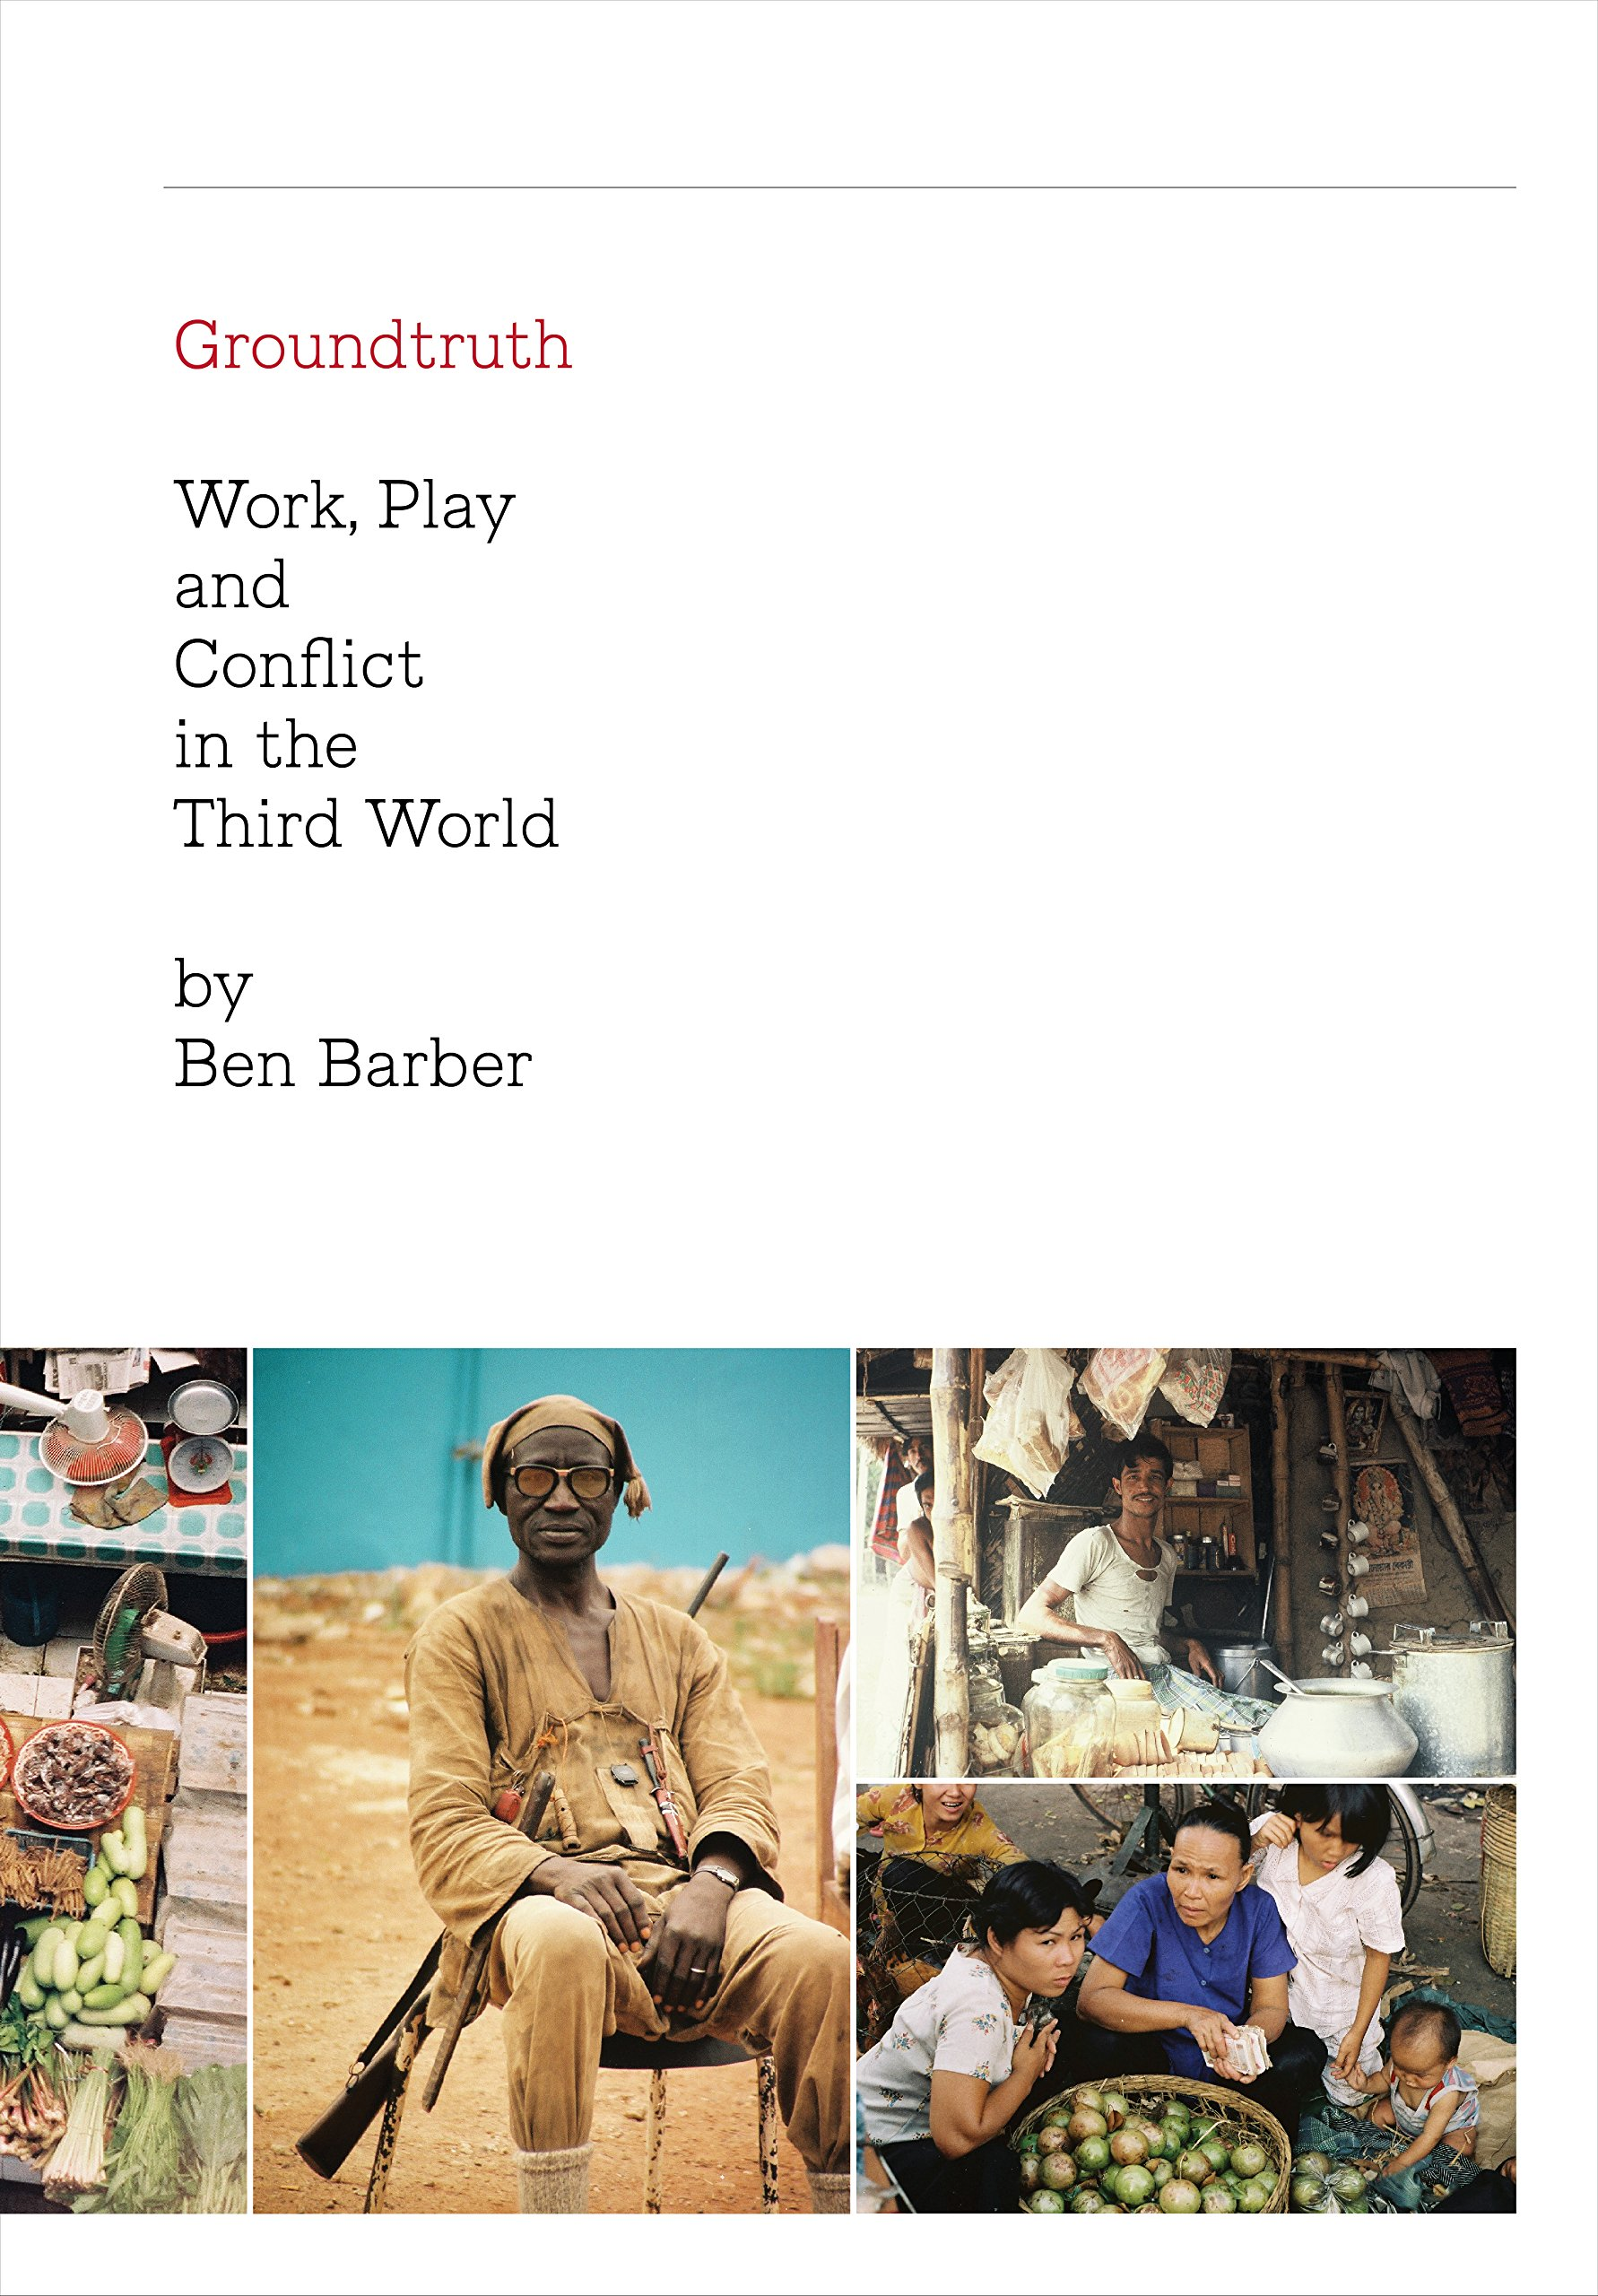 GROUNDTRUTH: Work, Play and Conflict in the Third World